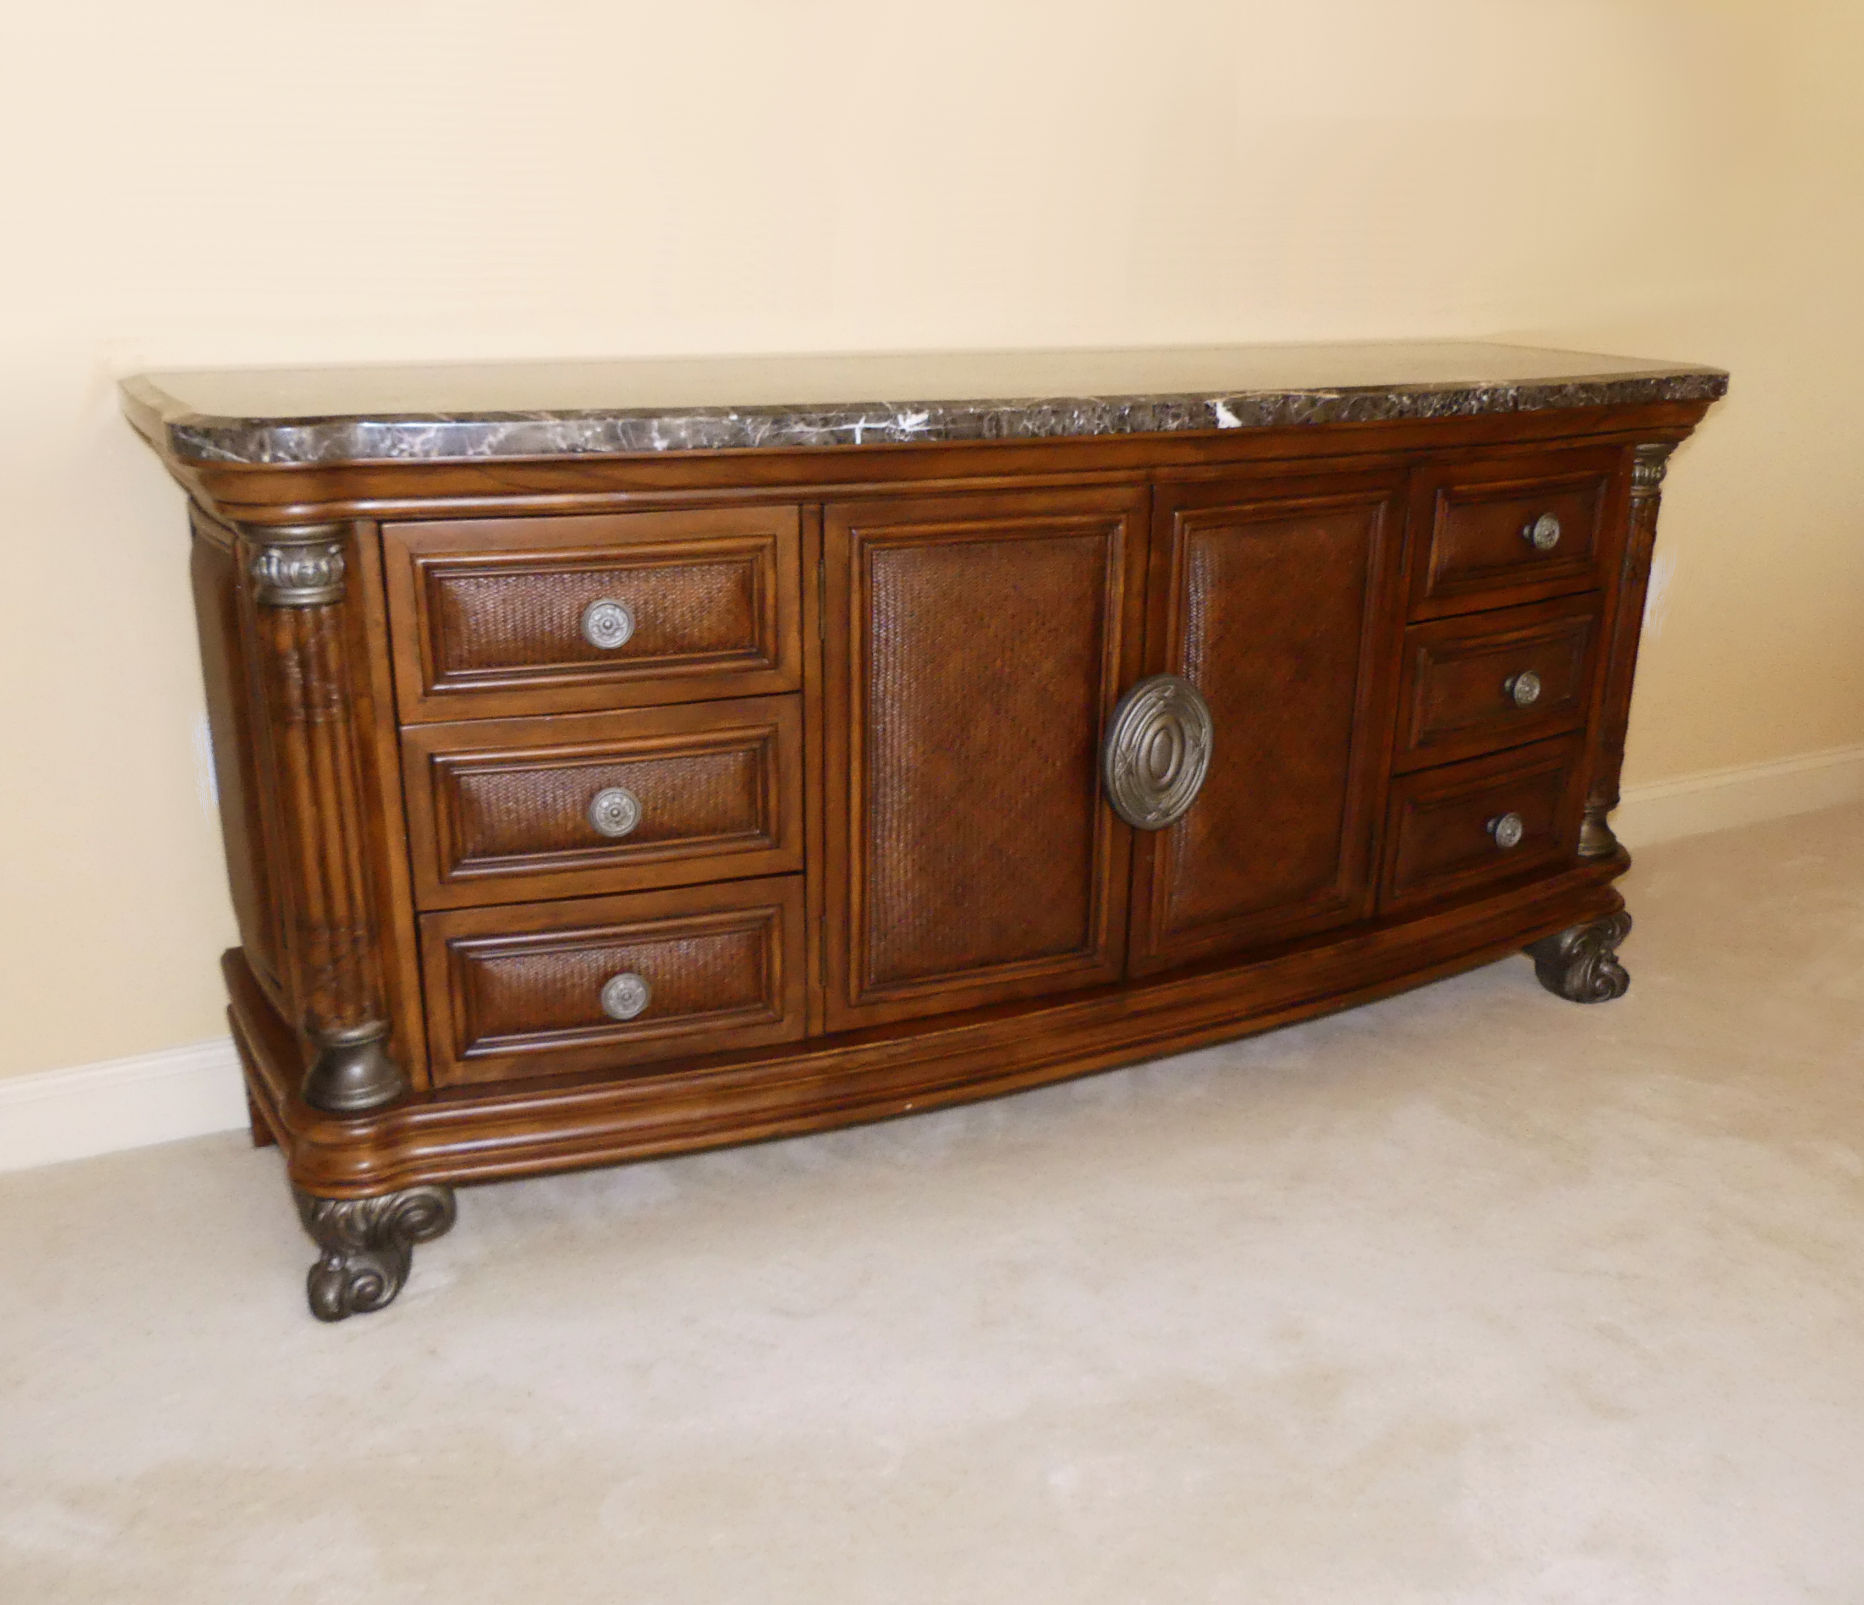 SOLD Collezione Europa Marble Top Dresser with Rattan Accents